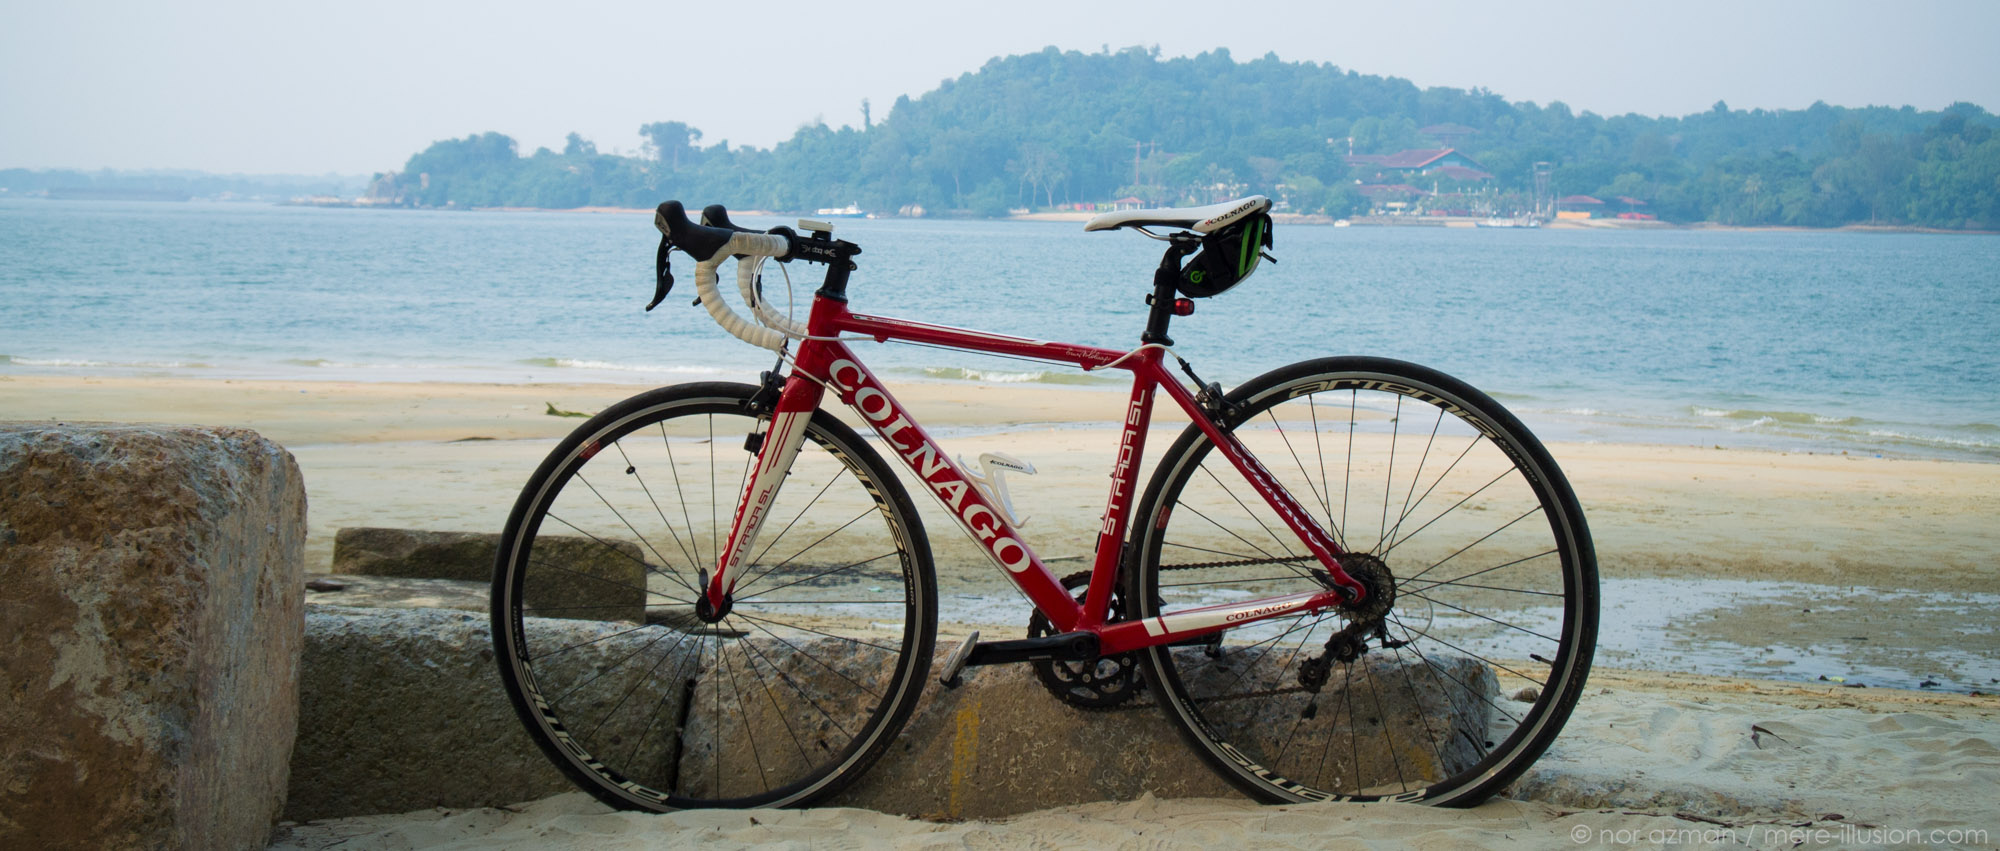 colnago strada at coney island singapore